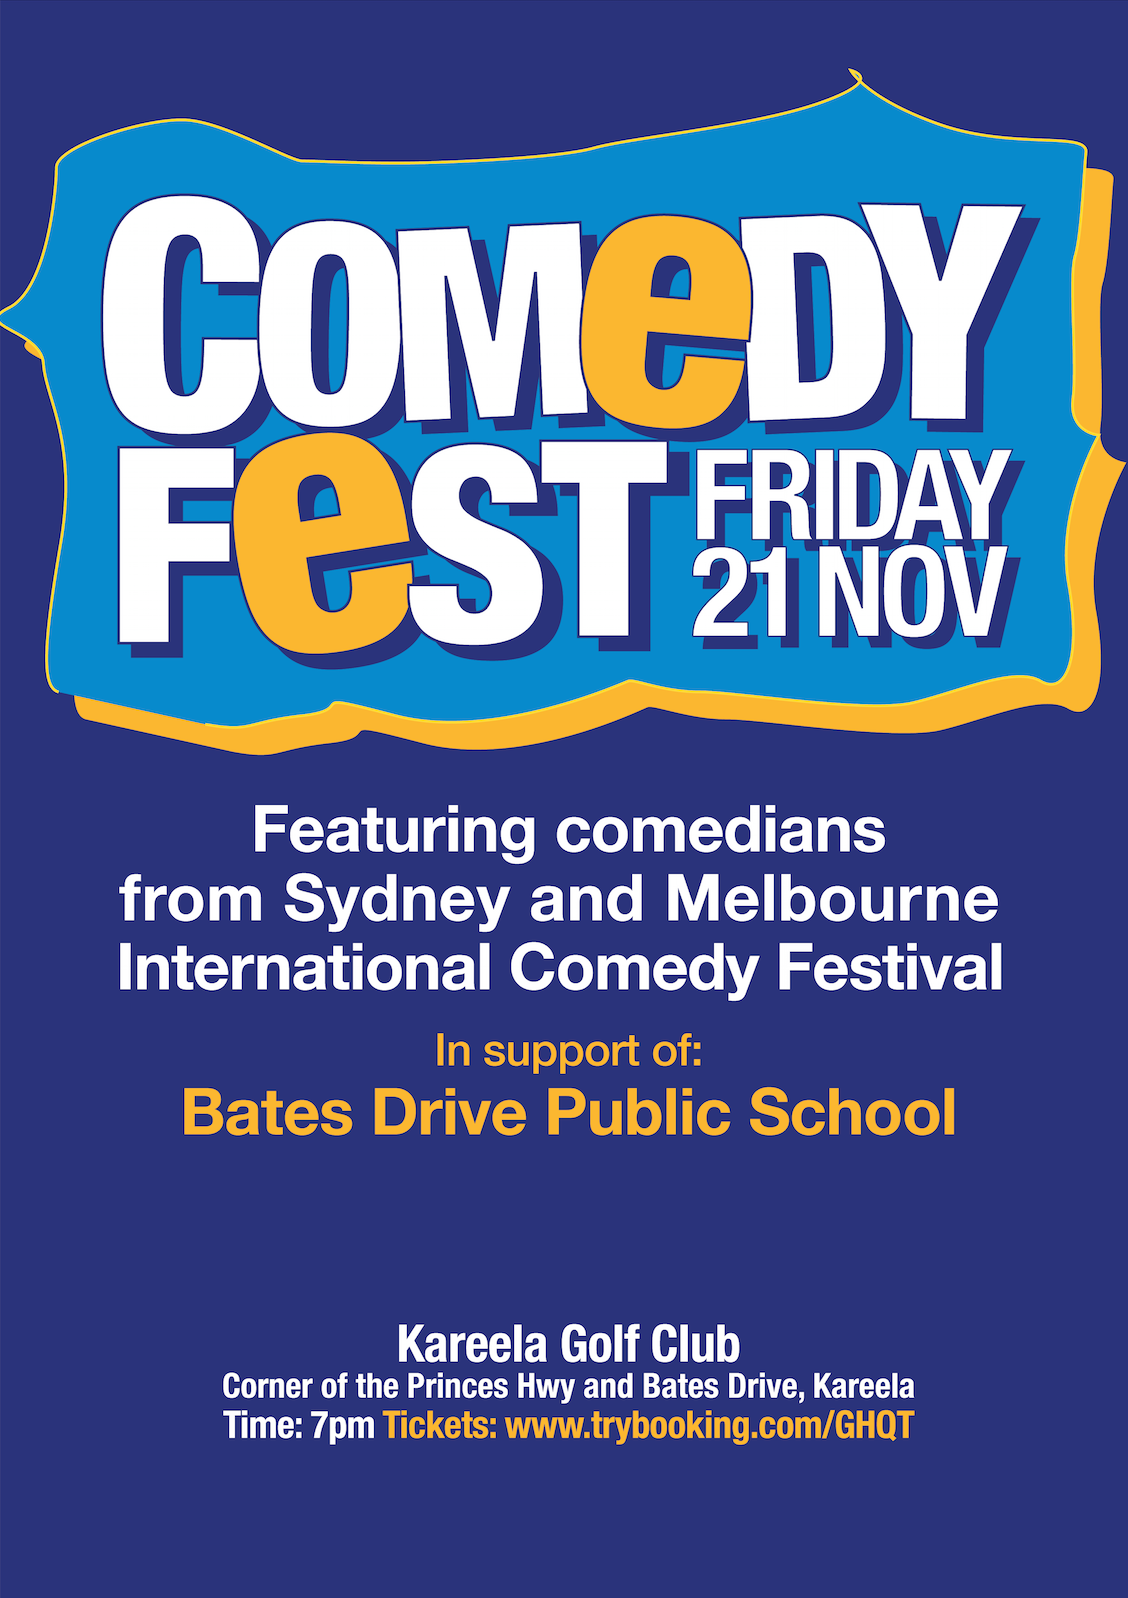 sydney international comedy festival 2014 - photo#4